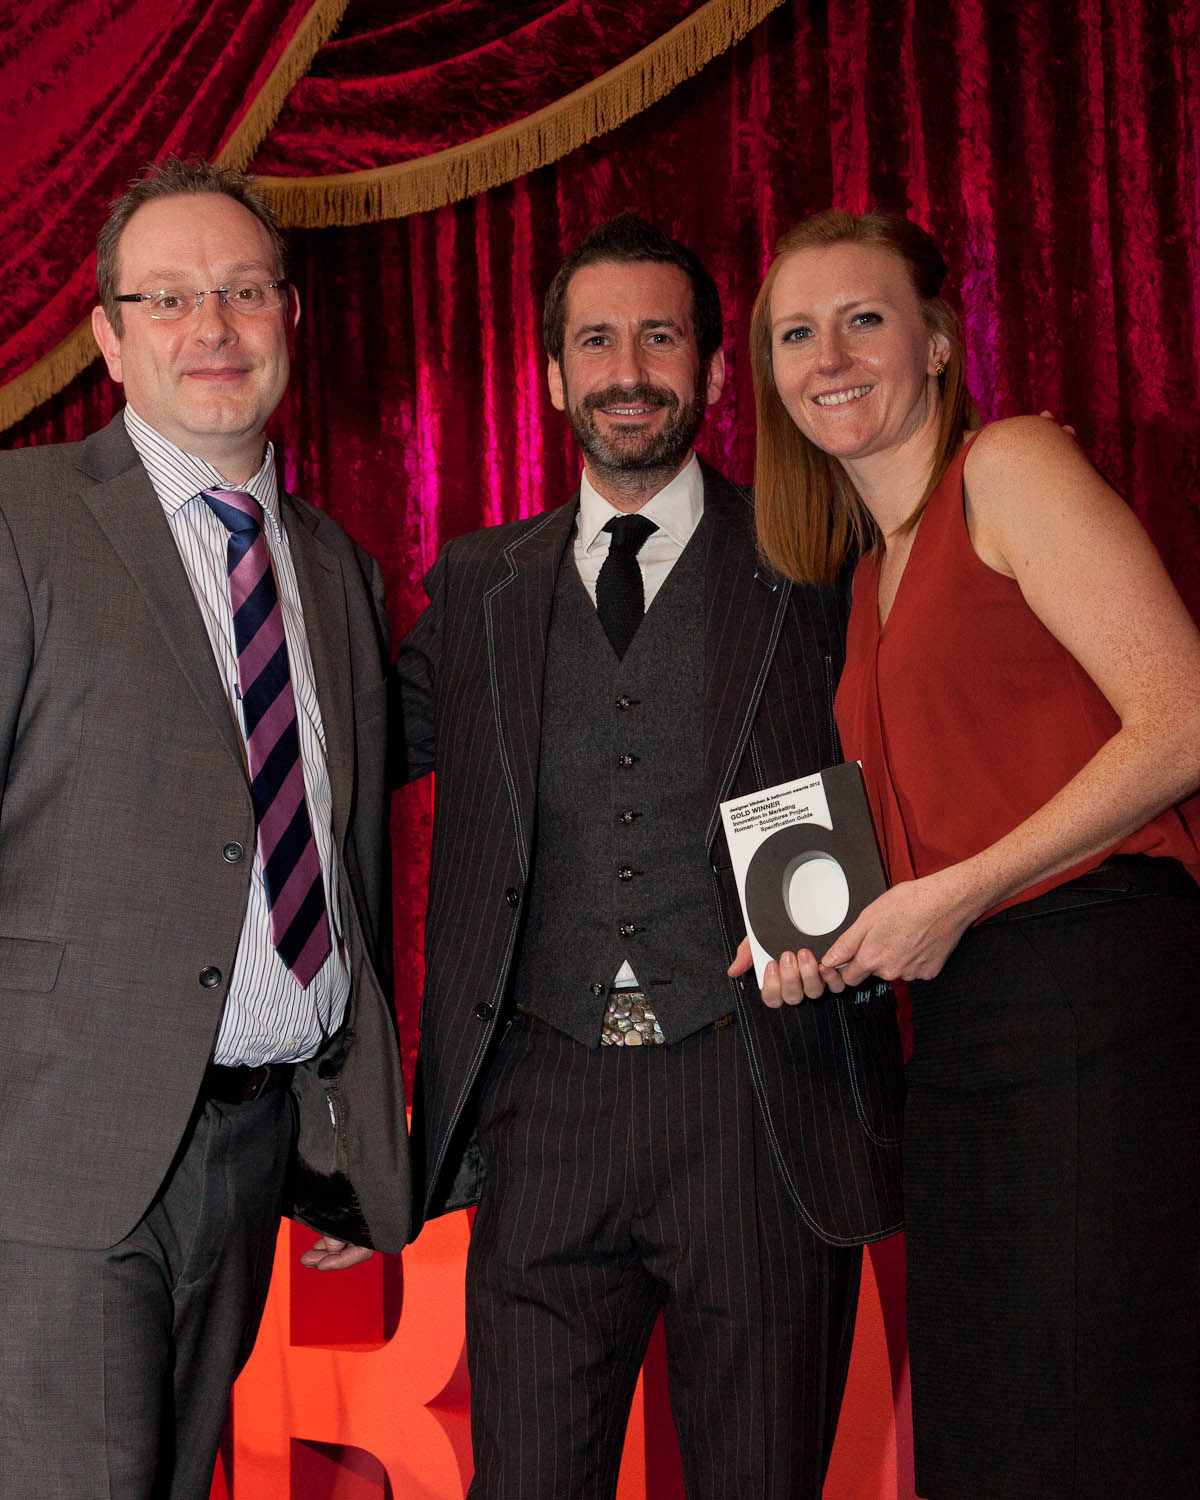 Roman Wins Gold Award at the Designer K&B Awards